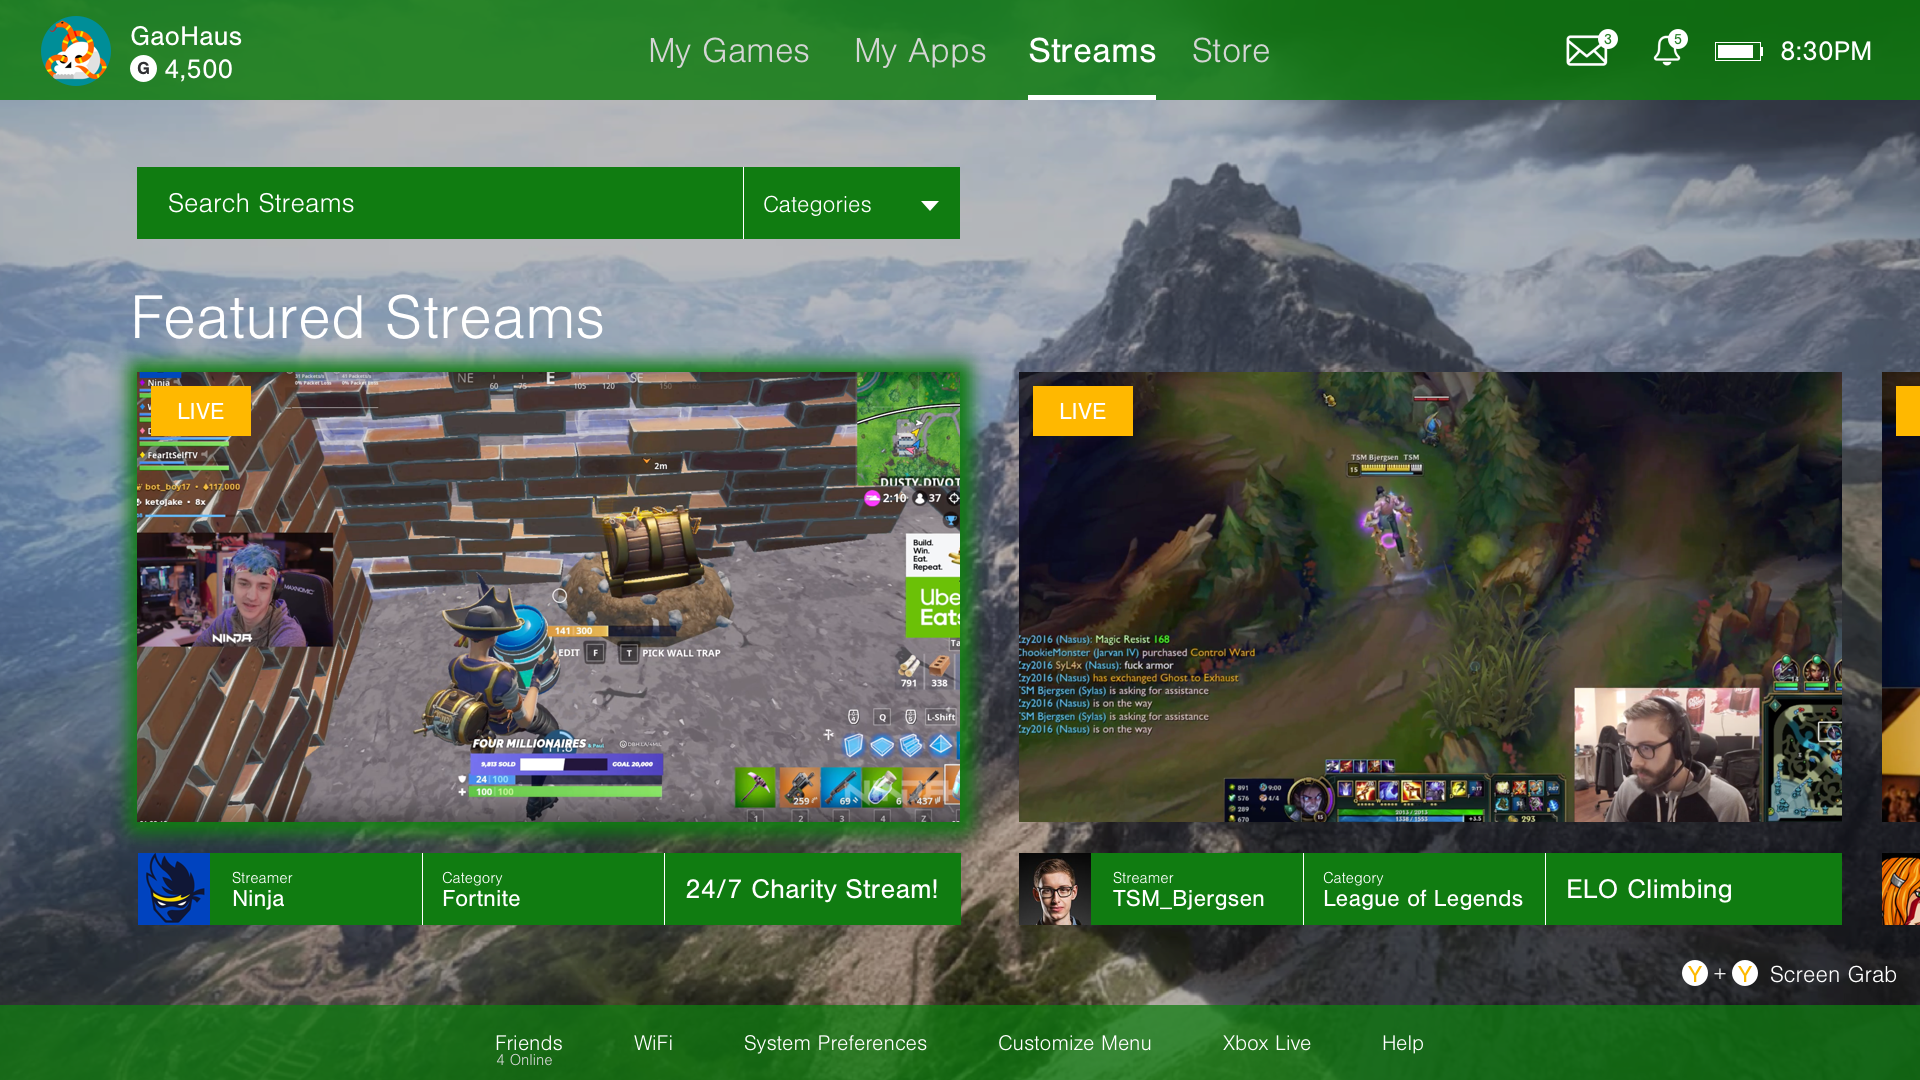 Watch Streams, not Ads - Experience an immersive dashboard that highlights top live streams from games to IRL content. The space used for advertisements is replaced with useful information about streamers, the categories, and their content.